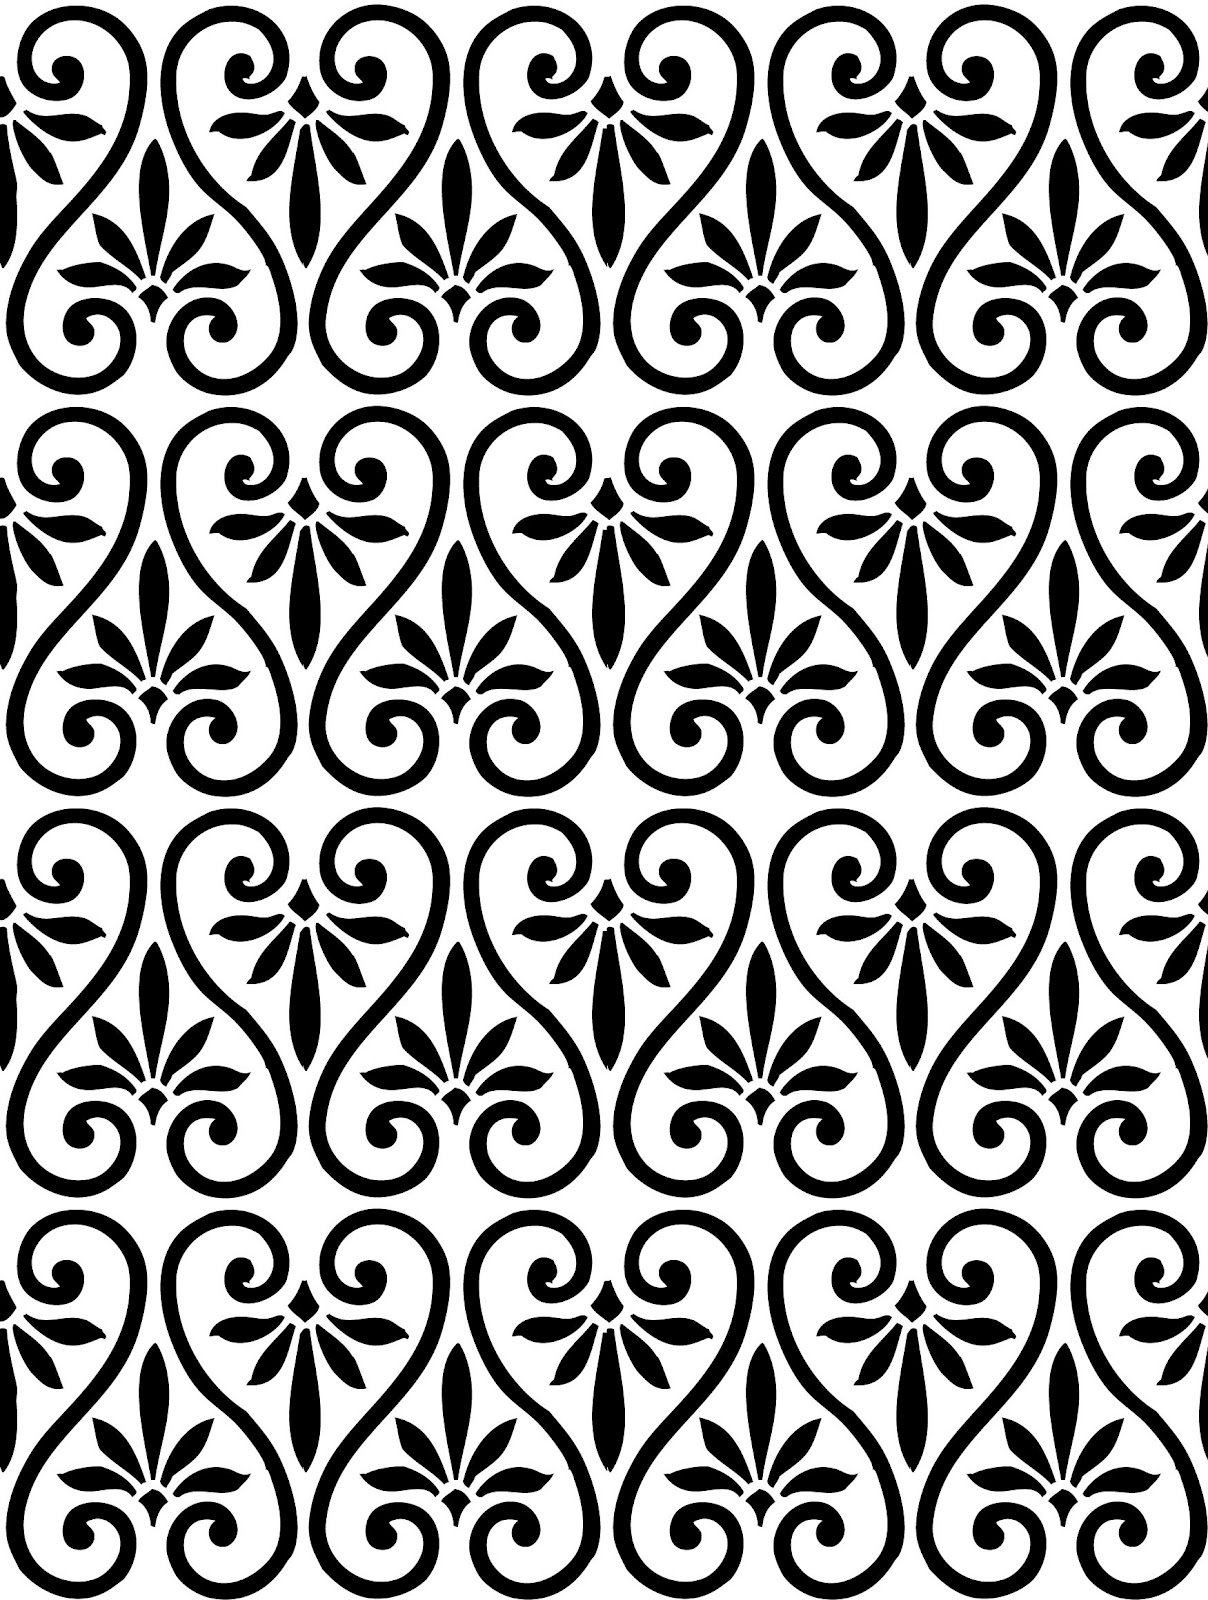 12 simple graphic patterns images easy swirl pattern